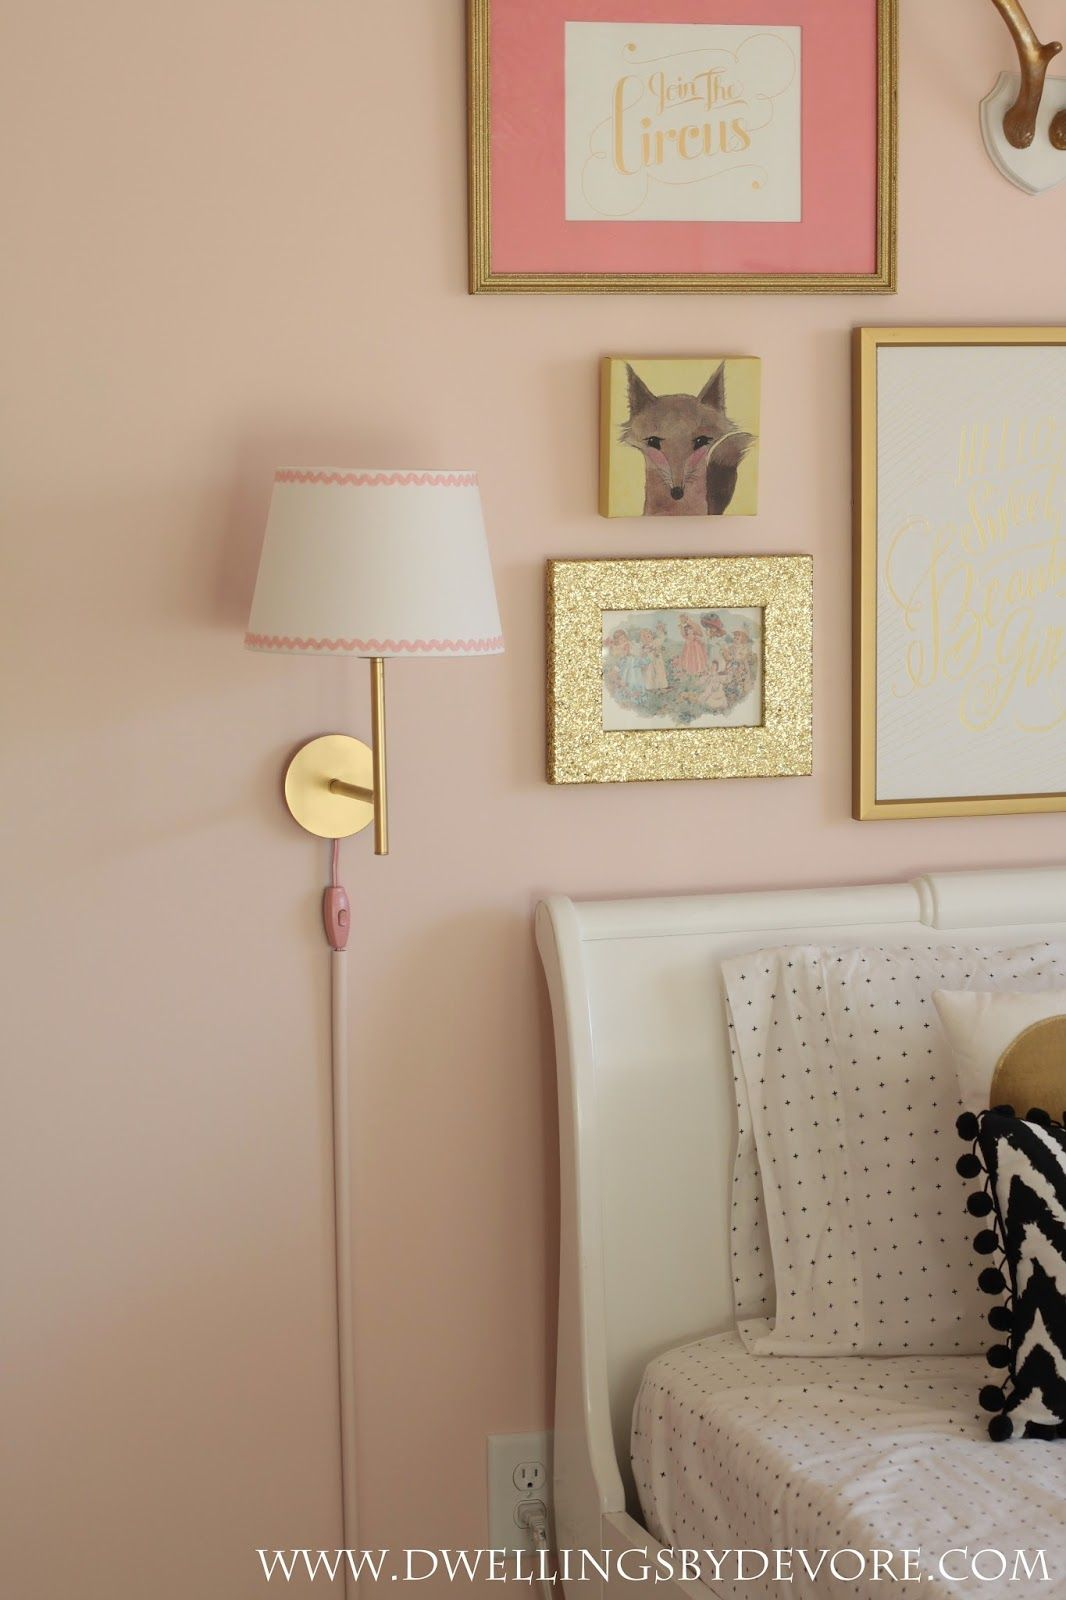 Ikea Rodd Wall Sconce Hack Rustoleum Gold Metallic Spray Paint Hot Glued Ric Rac On The Shade